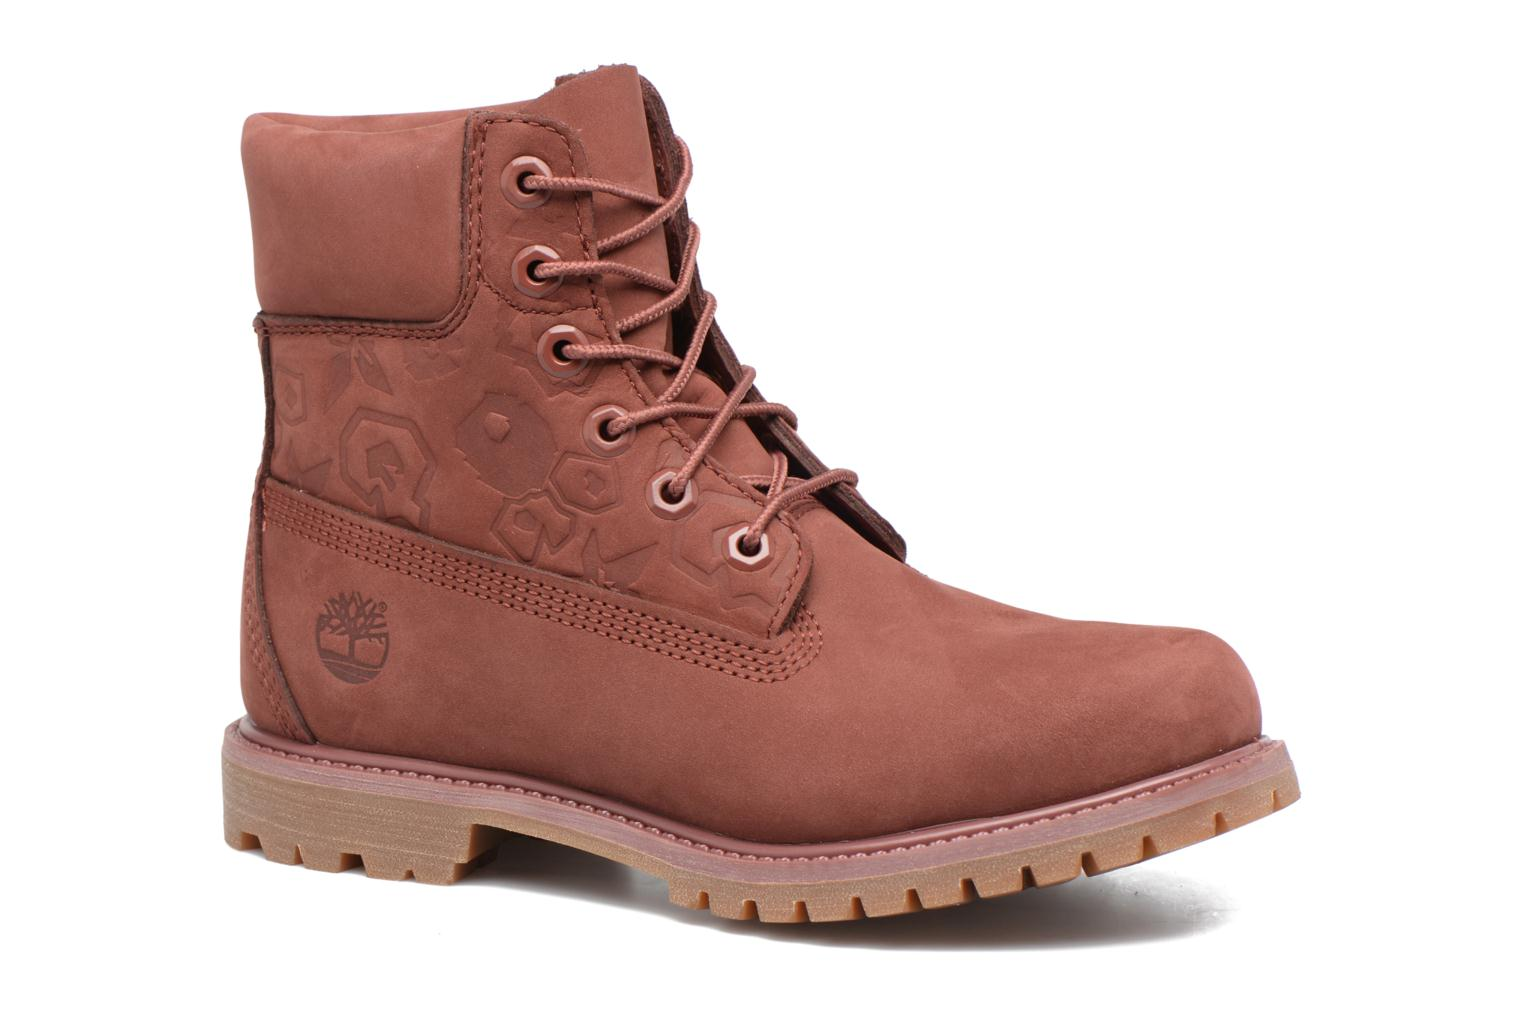 Timberland 6in Premium Boot - W Rose